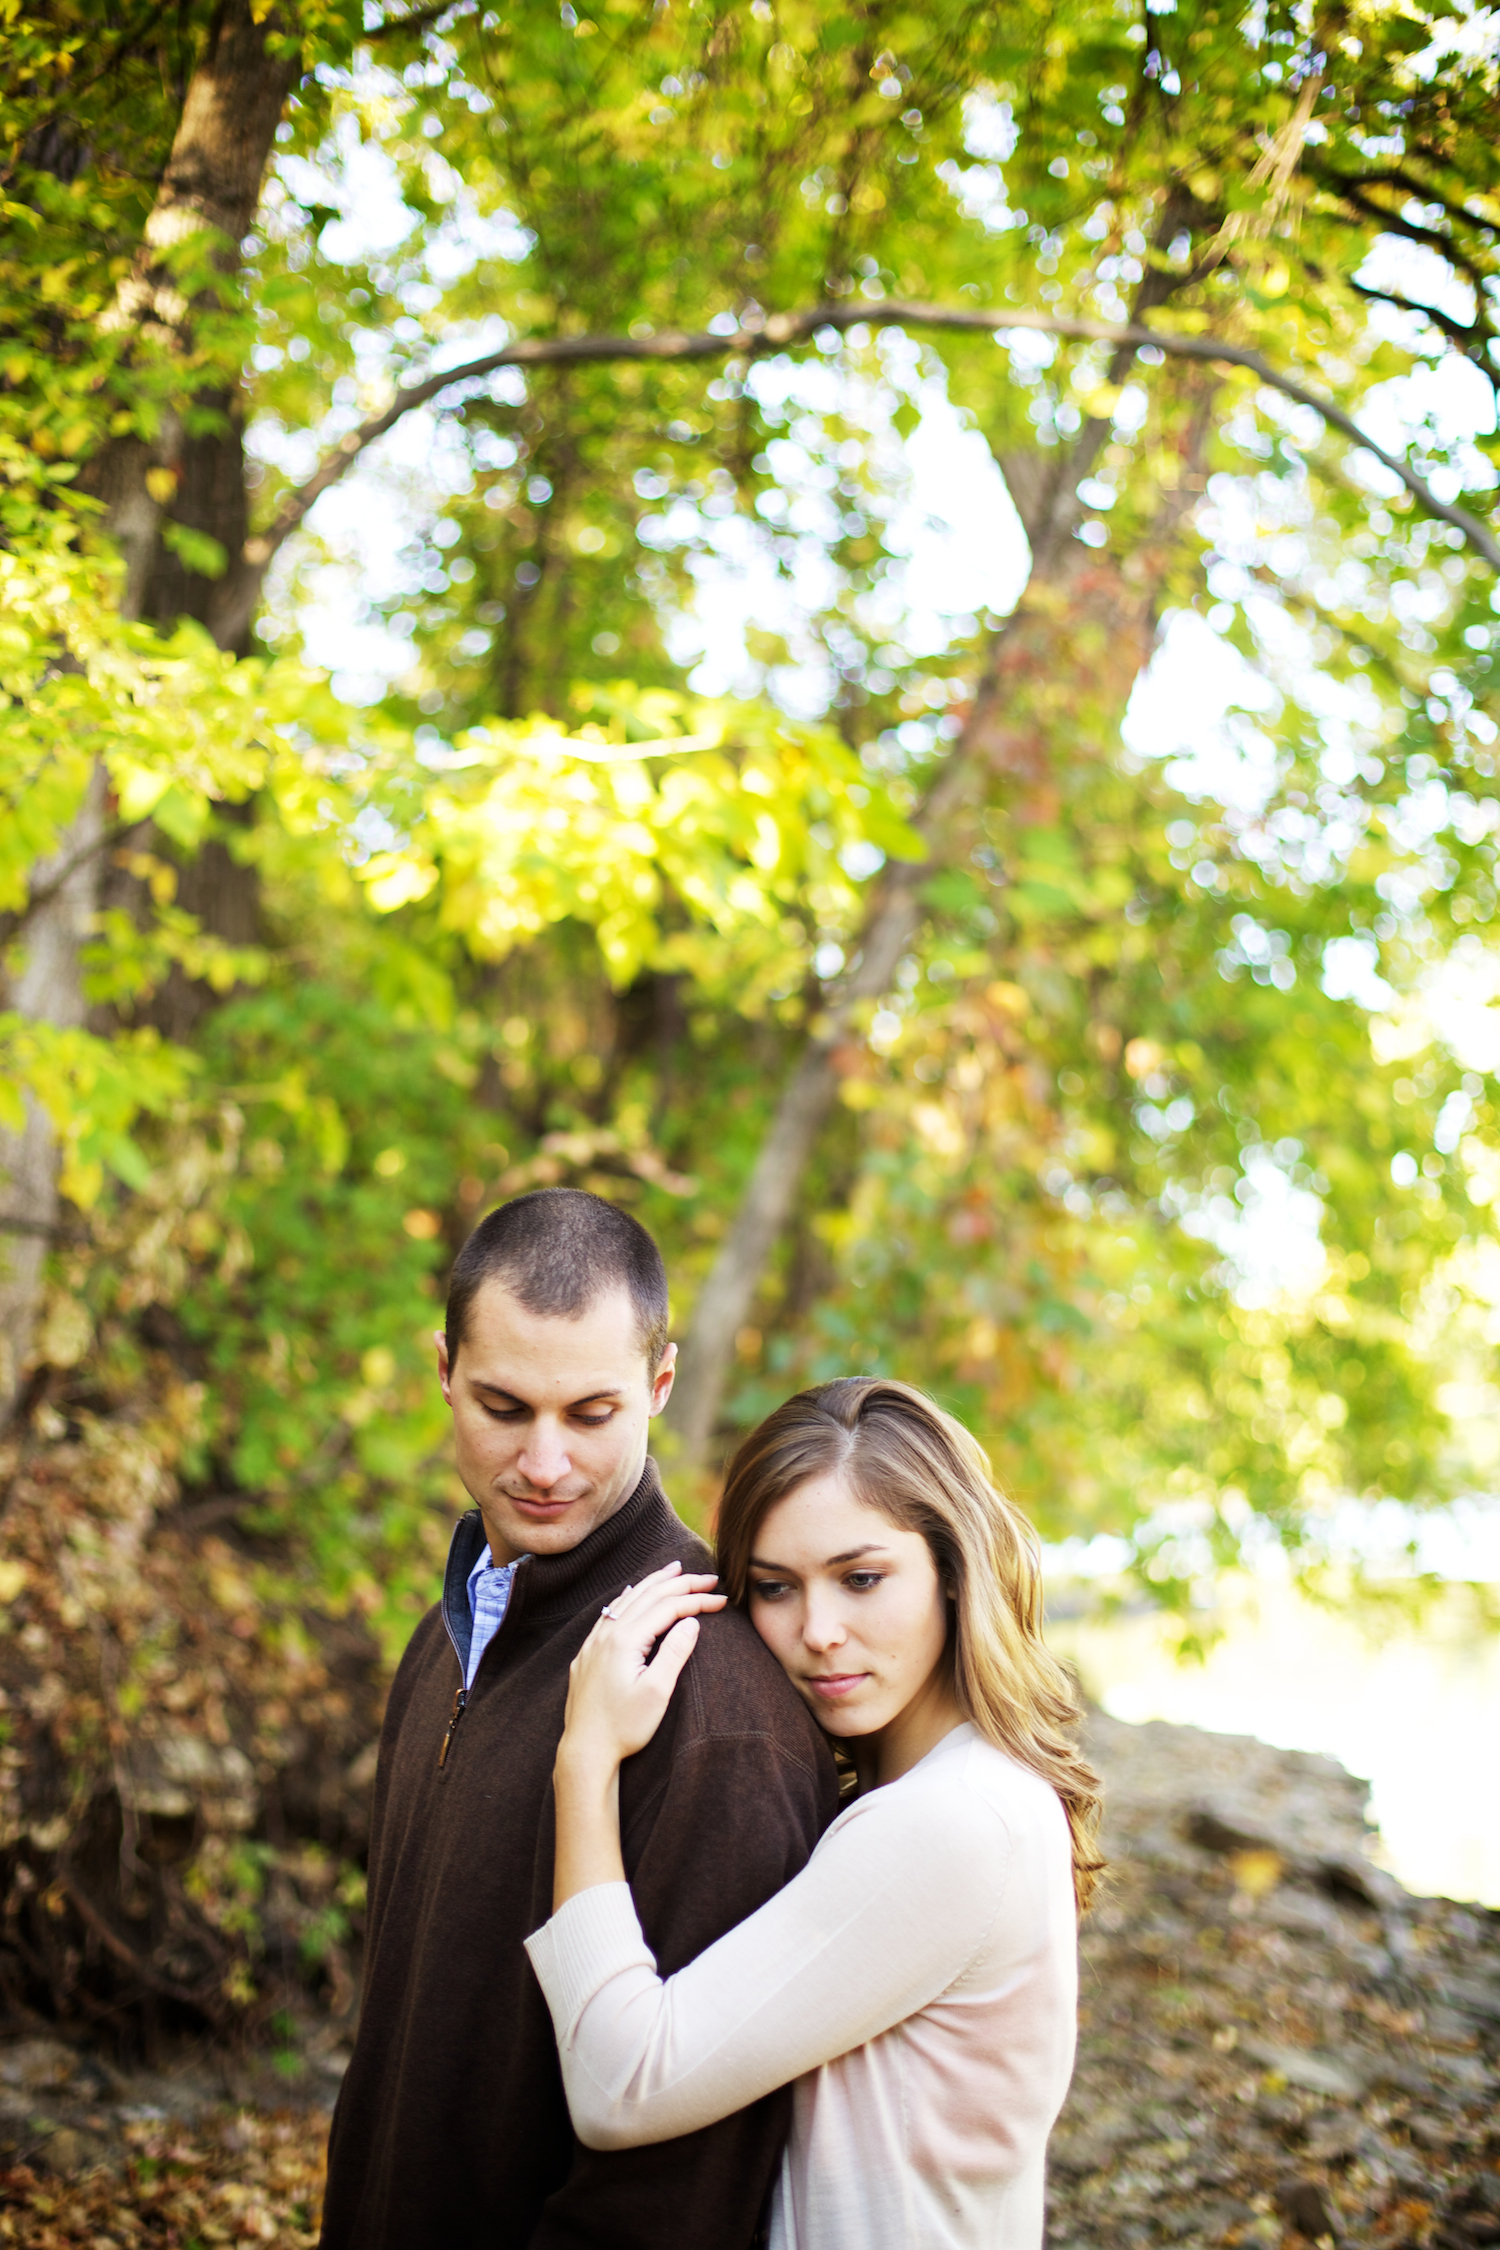 k elsey, taylor, Minneapolis, downtown, Minnesota, blanket, wine, engagement session, faire, boat, woods, nature, wine glasses, wine in the morning, love, engaged